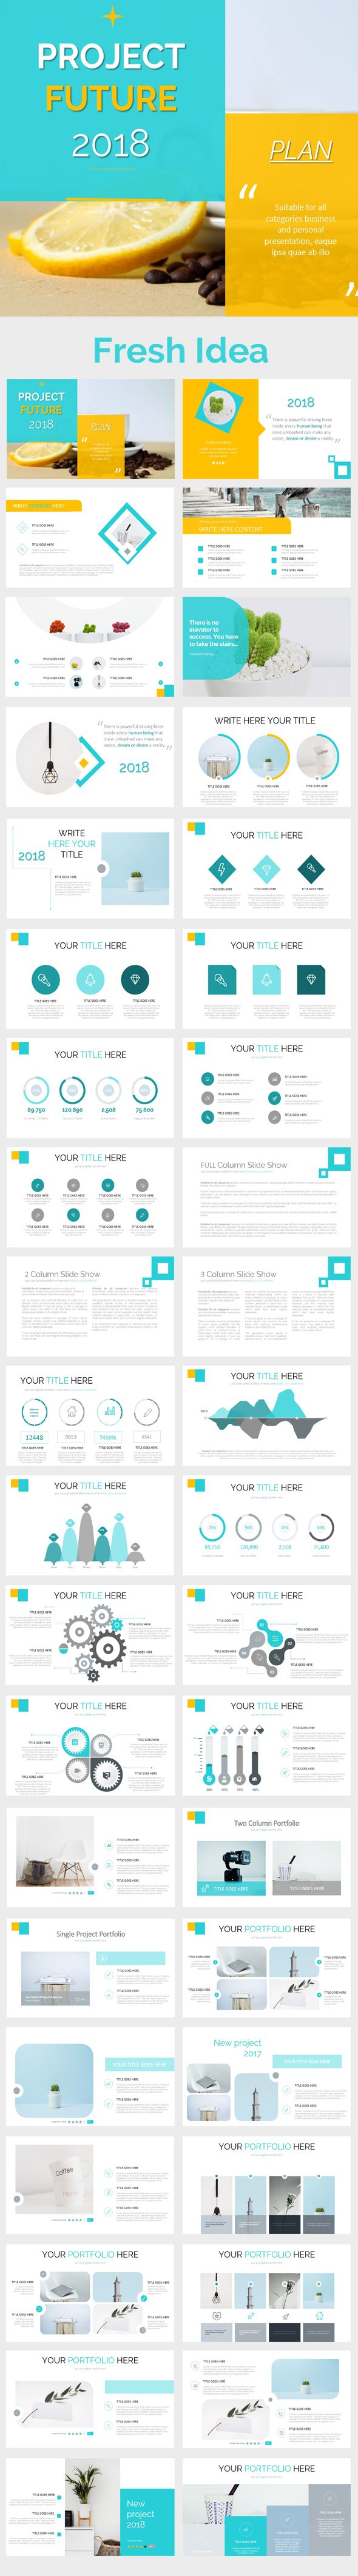 Project 2018 Powerpoint Presentation Template - 40 Slide Unique